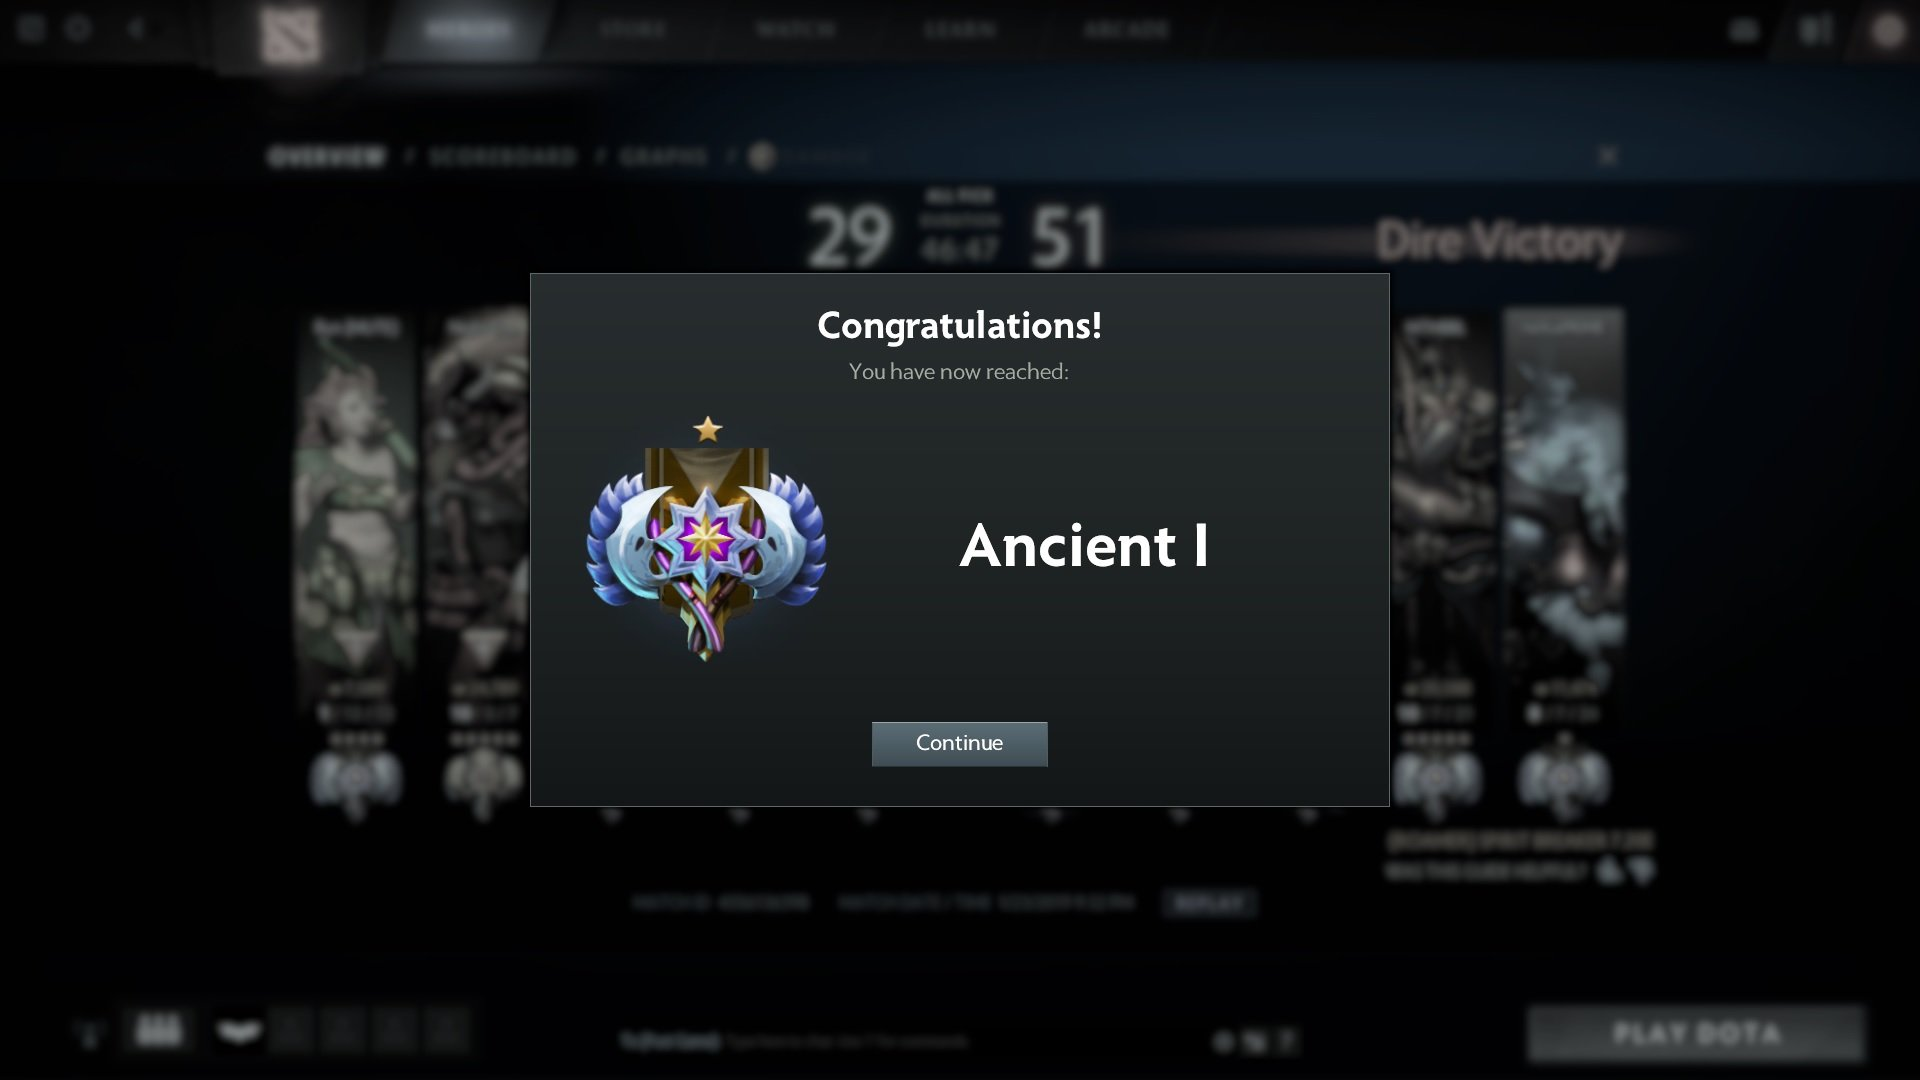 What is Dota 2 calibration?